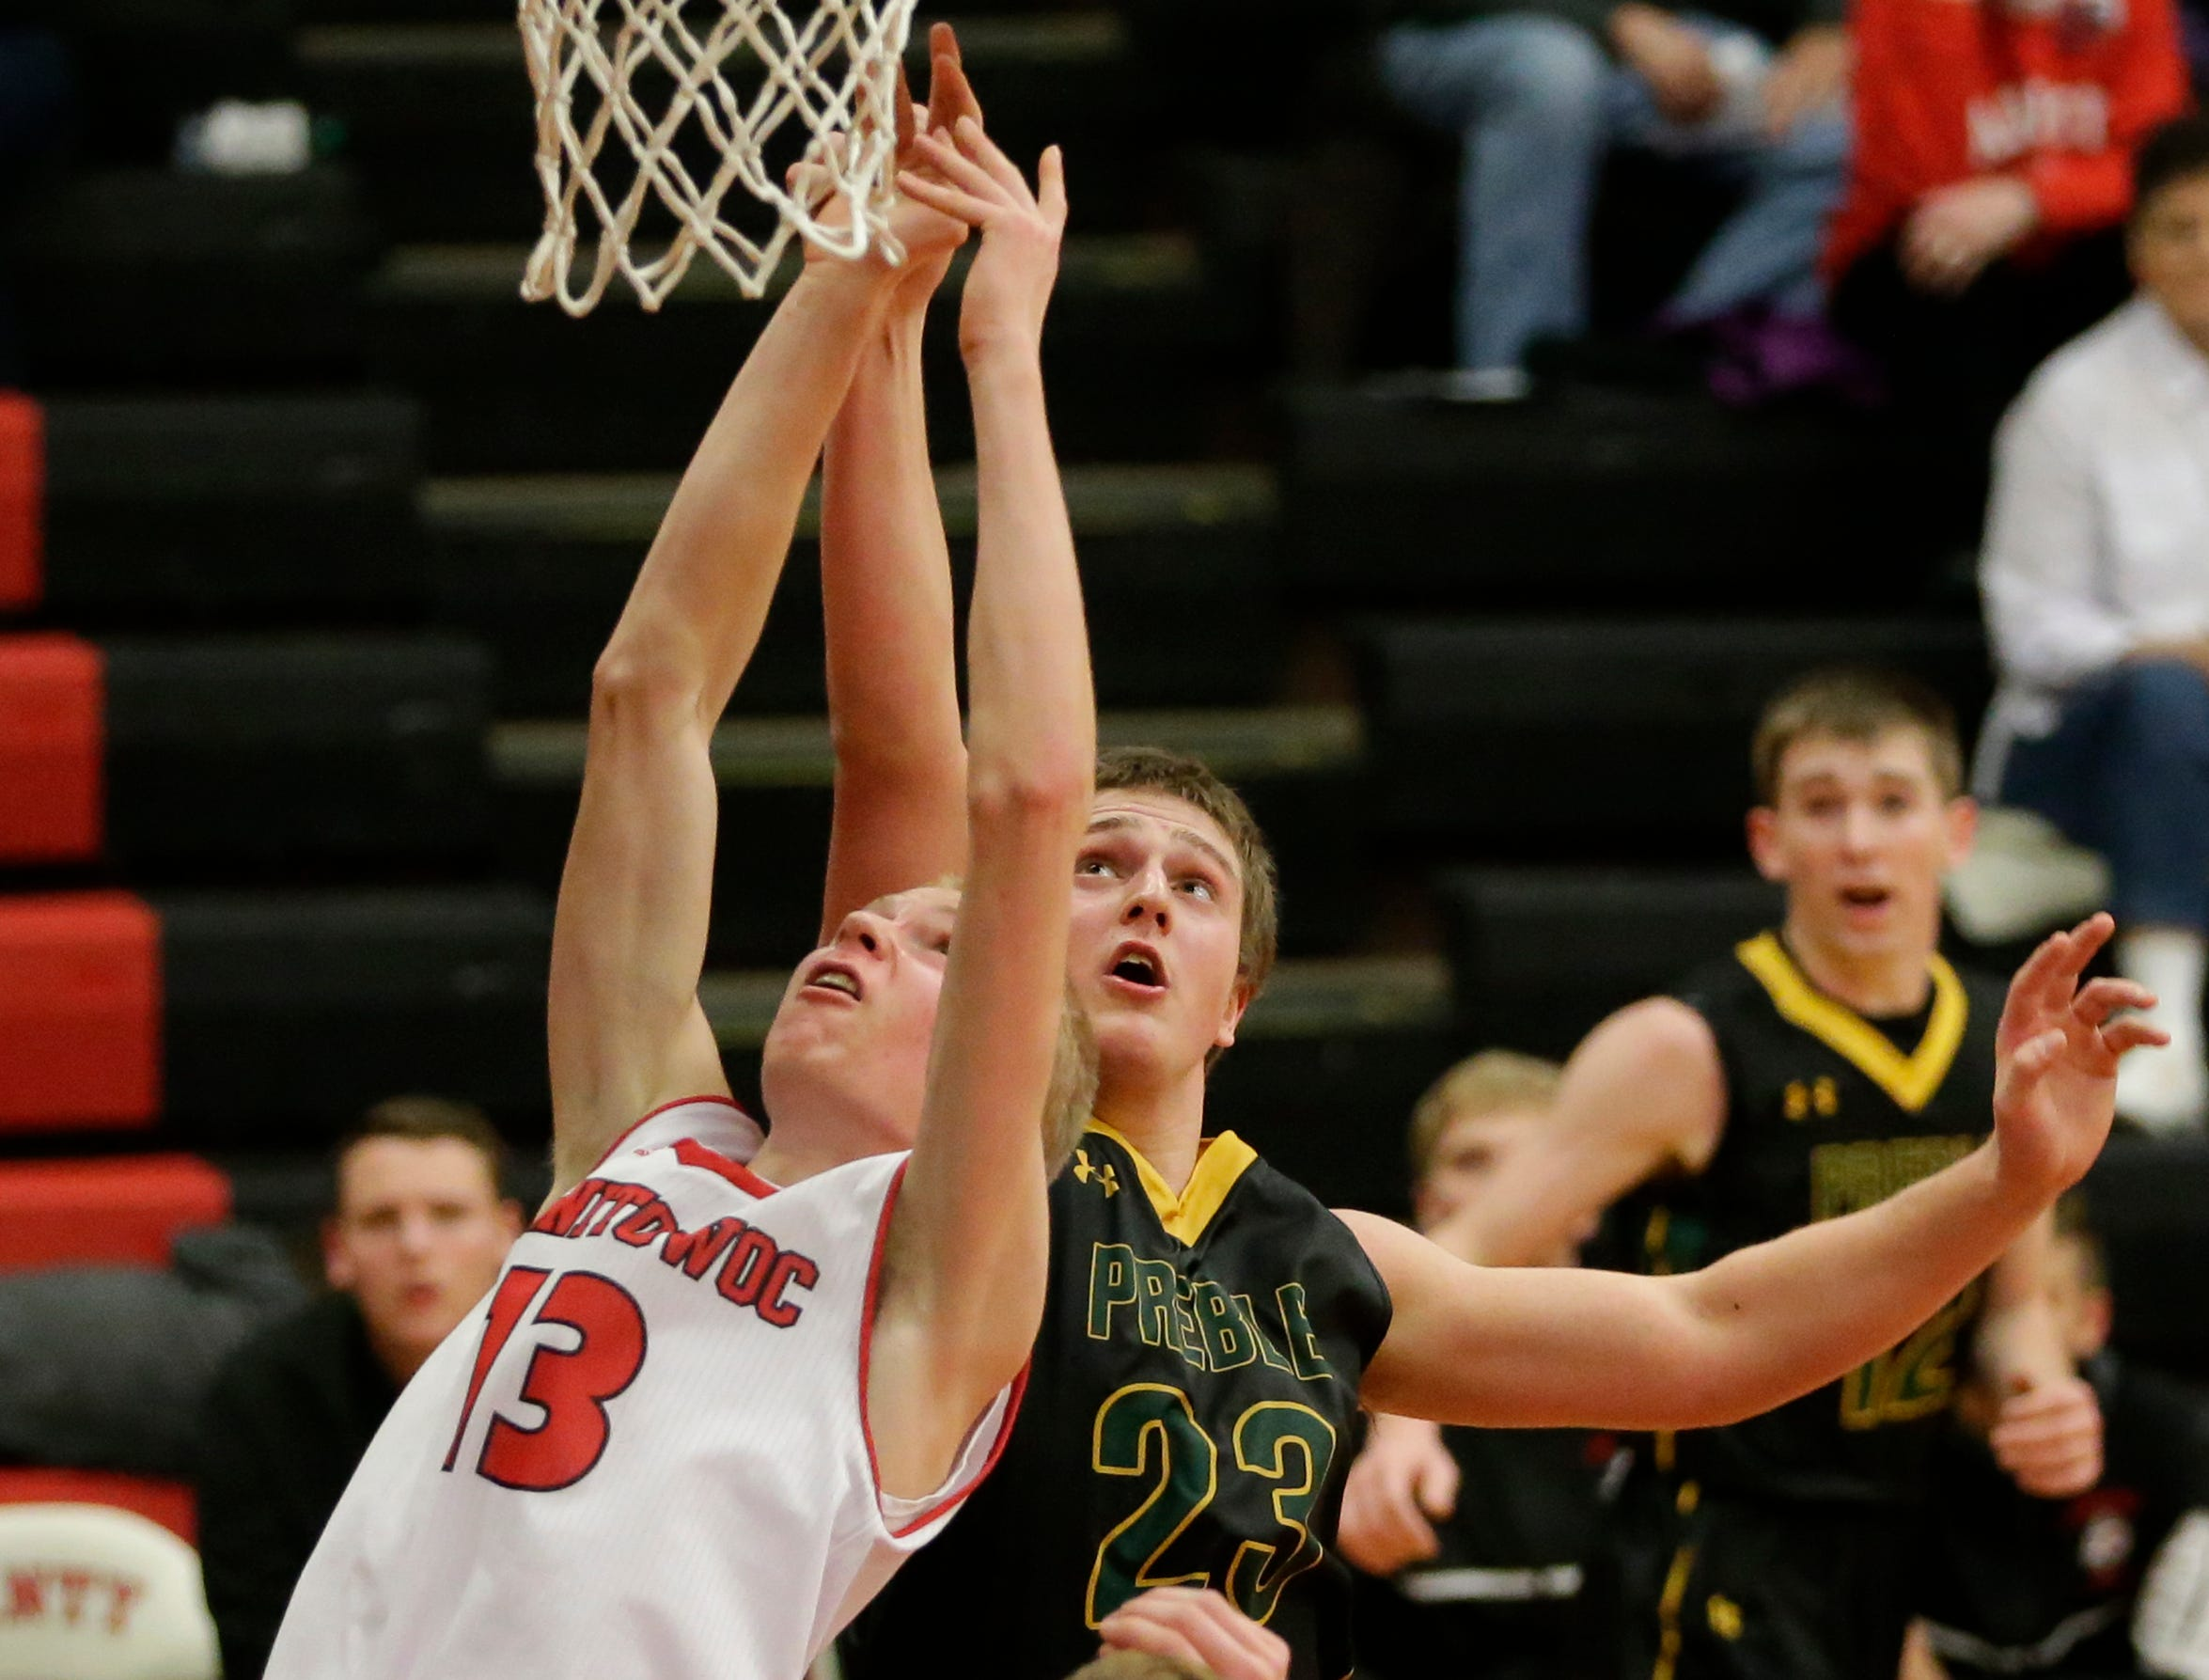 Manitowoc Lincoln's Sam Jacobson (13) battles Green Bay Preble's Bryan Boockmeier (23) for a rebound during boys FRCC basketball at Manitowoc Lincoln High School Friday, December 21, 2018, in Manitowoc, Wis. Joshua Clark/USA TODAY NETWORK-Wisconsin